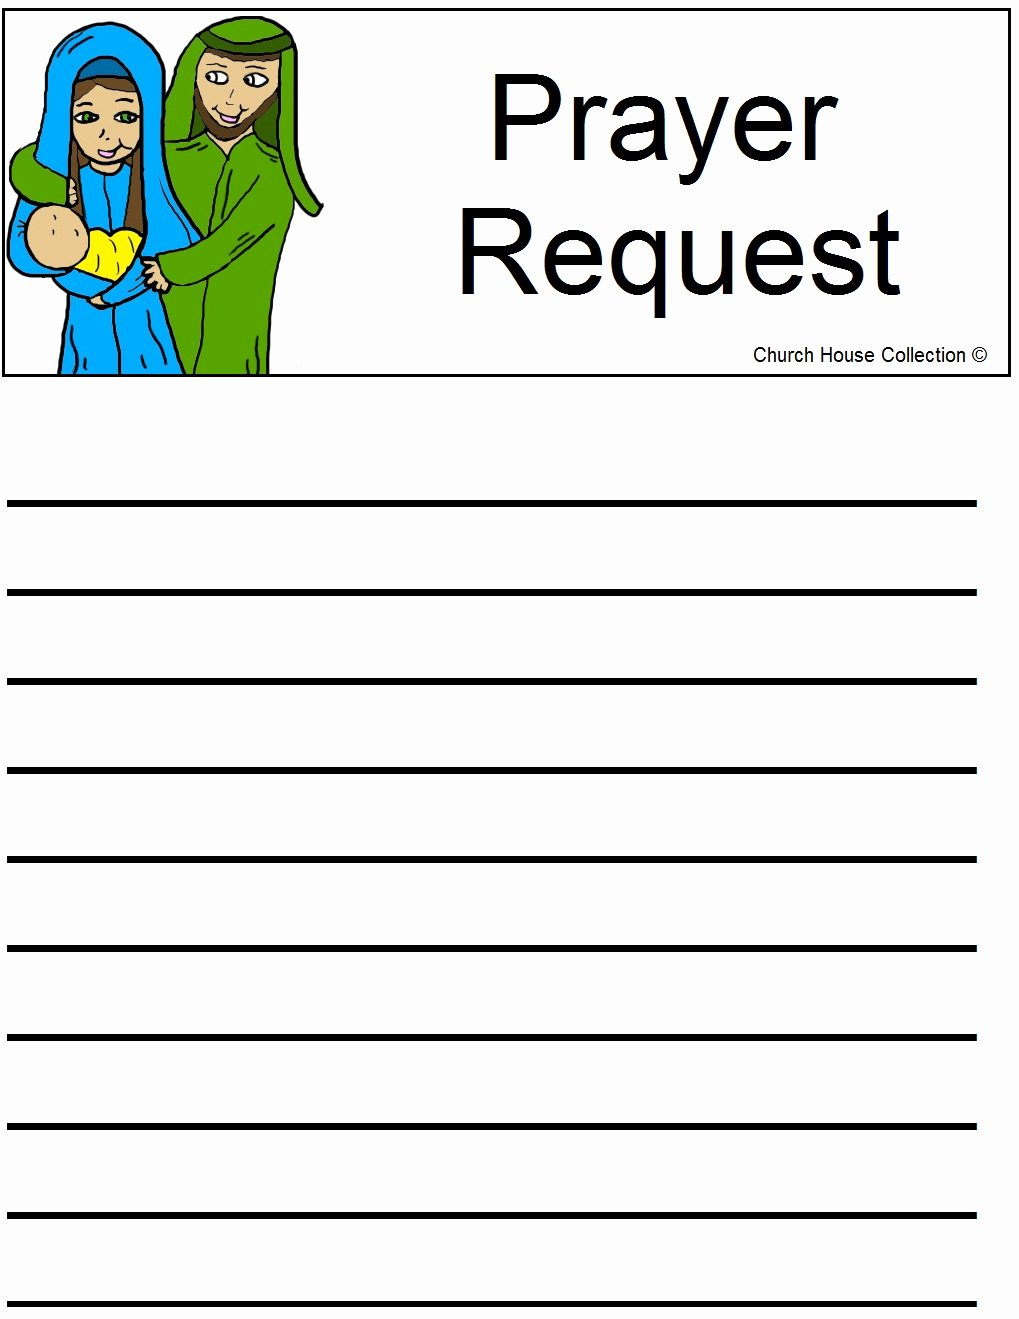 Prayer Request Cards Free Printables Lovely Church House Collection Blog Nativity Sunday School Lesson